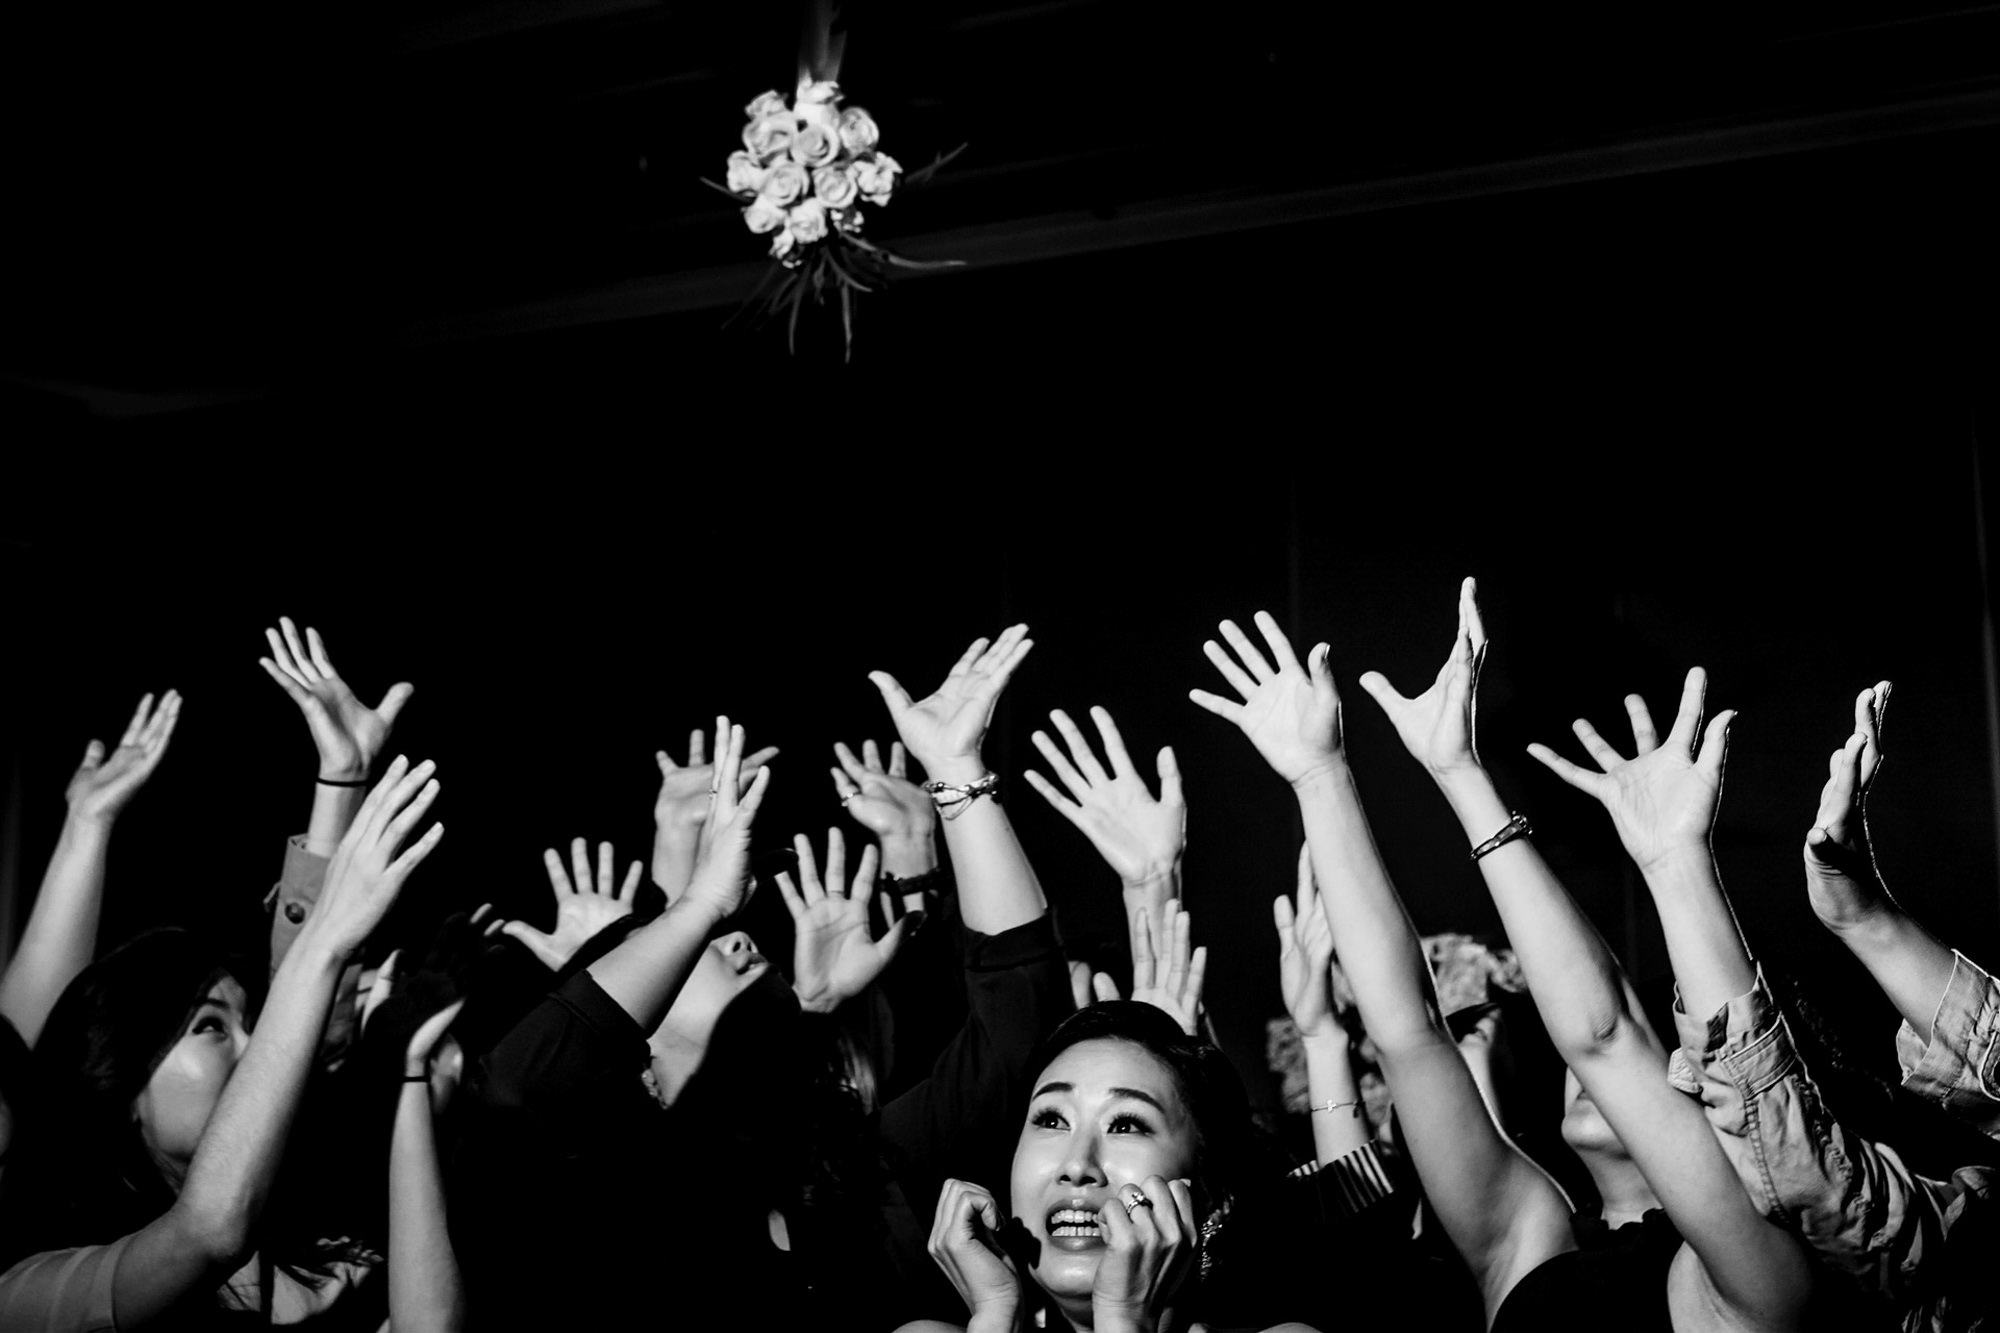 black-and-white-hands-catching-bouquet-by-ken-pak-washington-dc-photographer